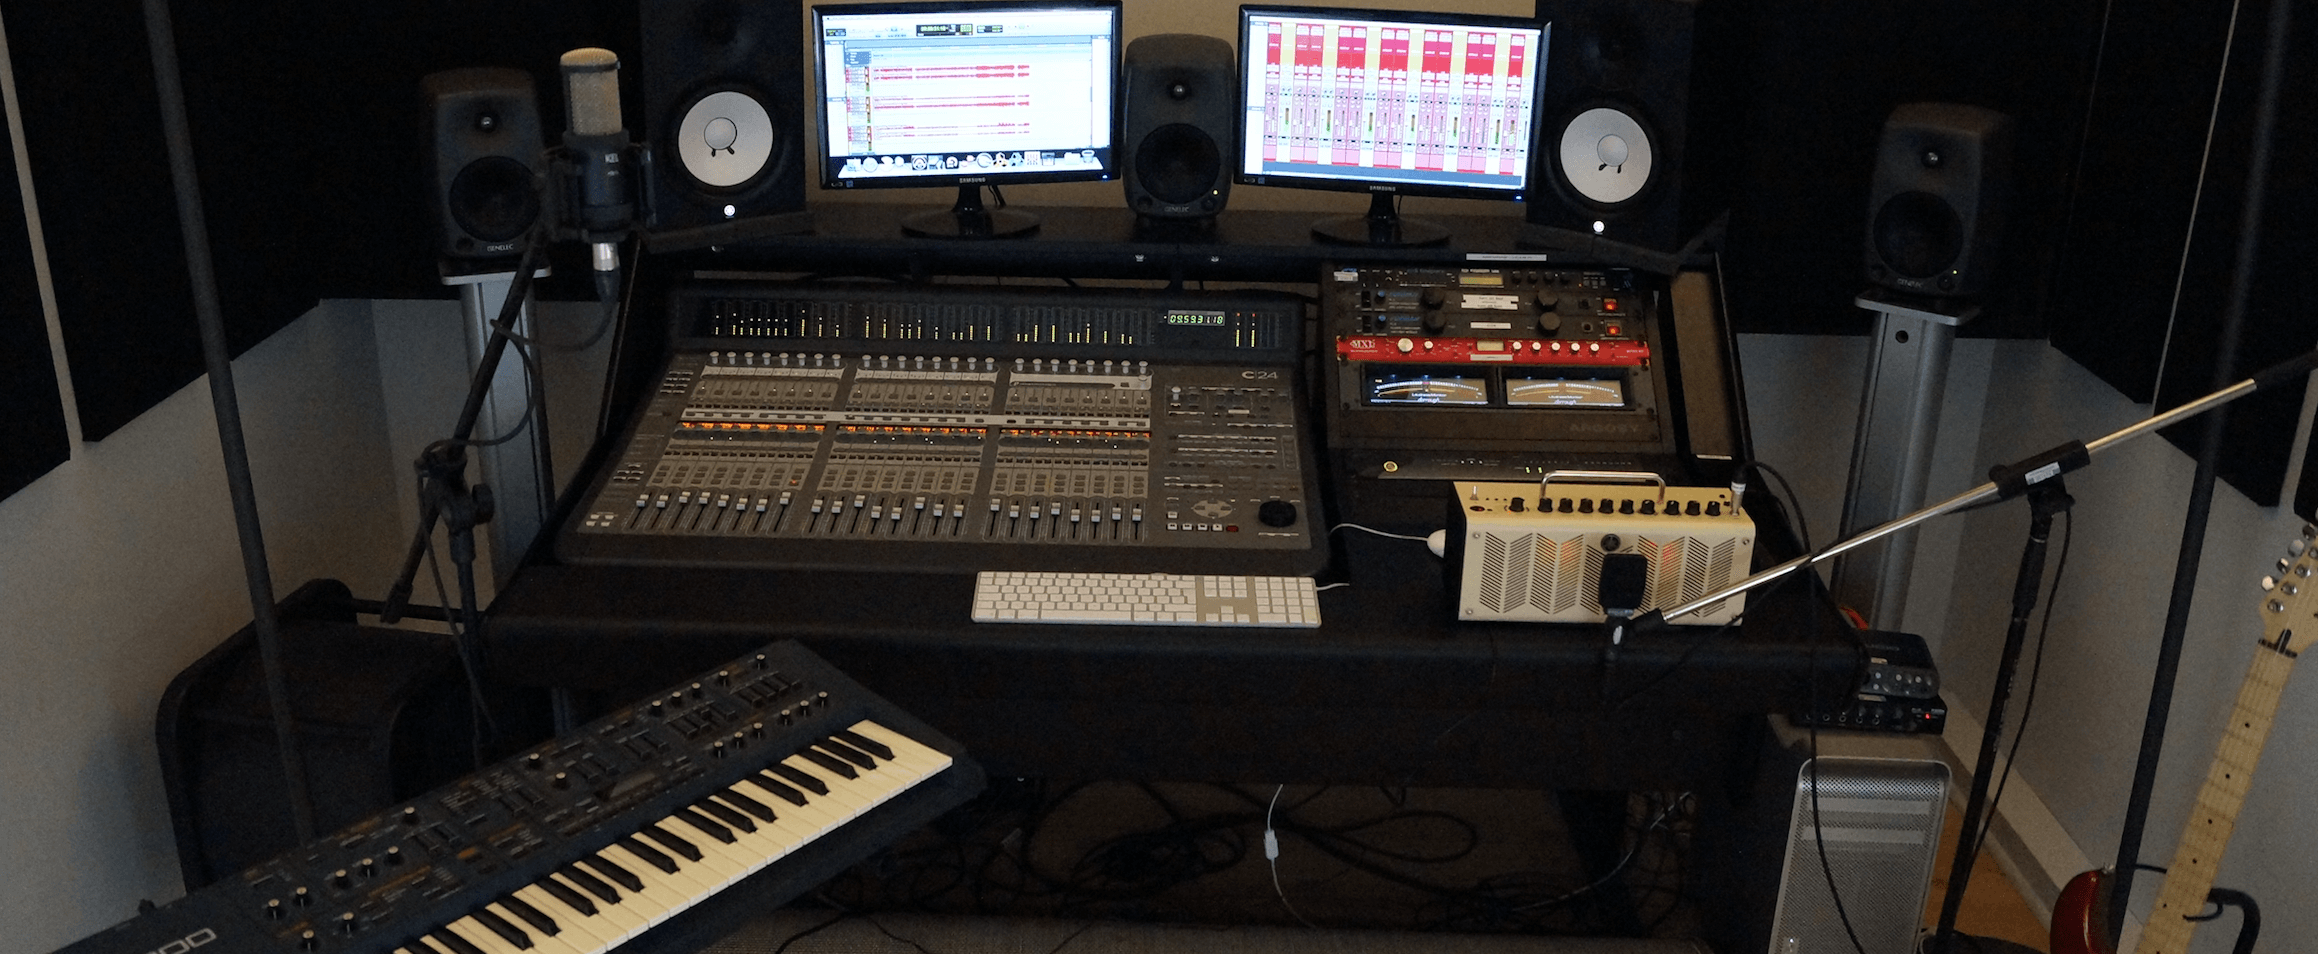 CHECKLIST: How to choose your next studio piece